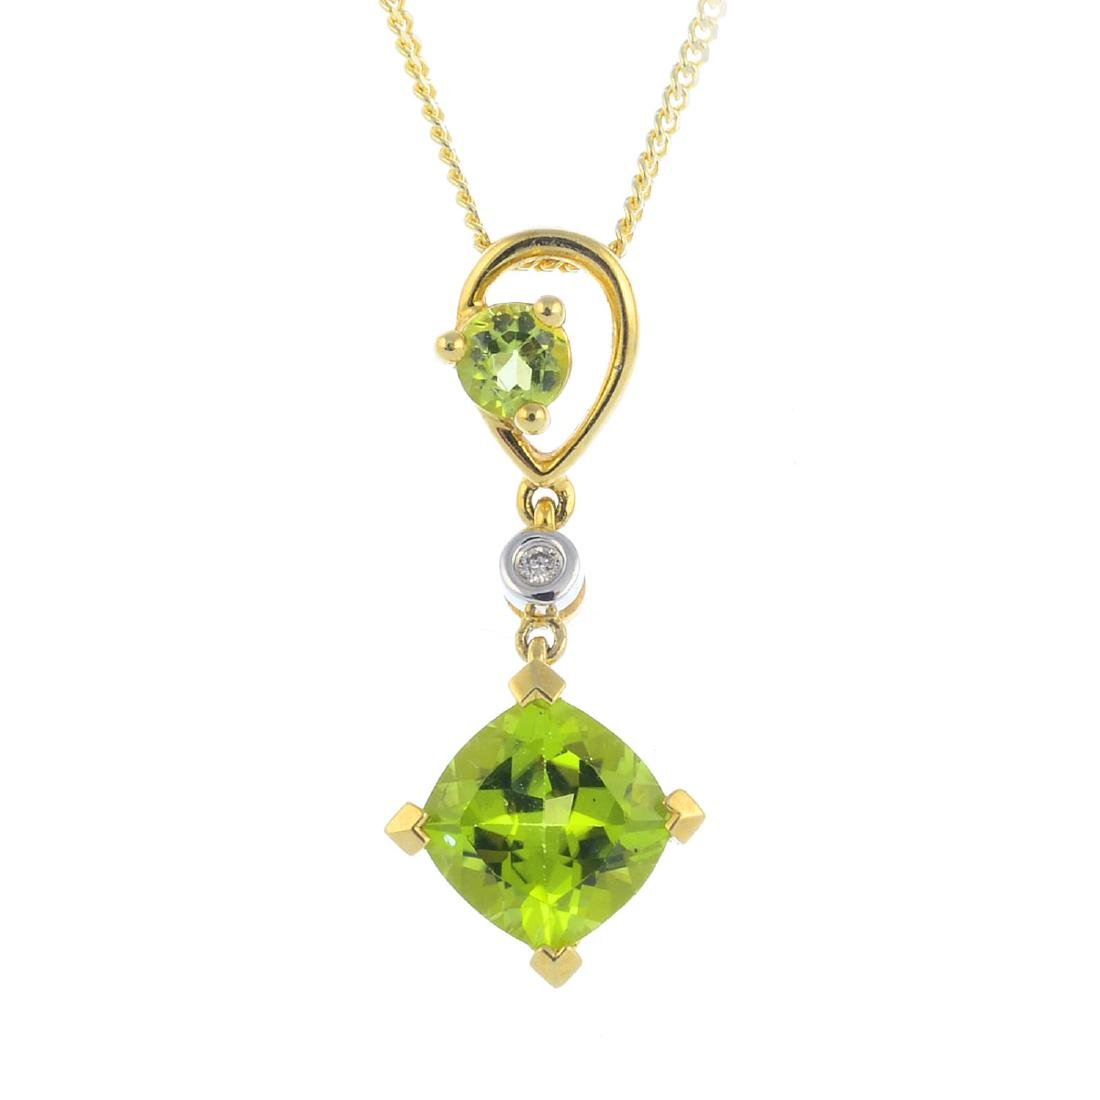 A 9ct gold peridot and diamond pendant. The